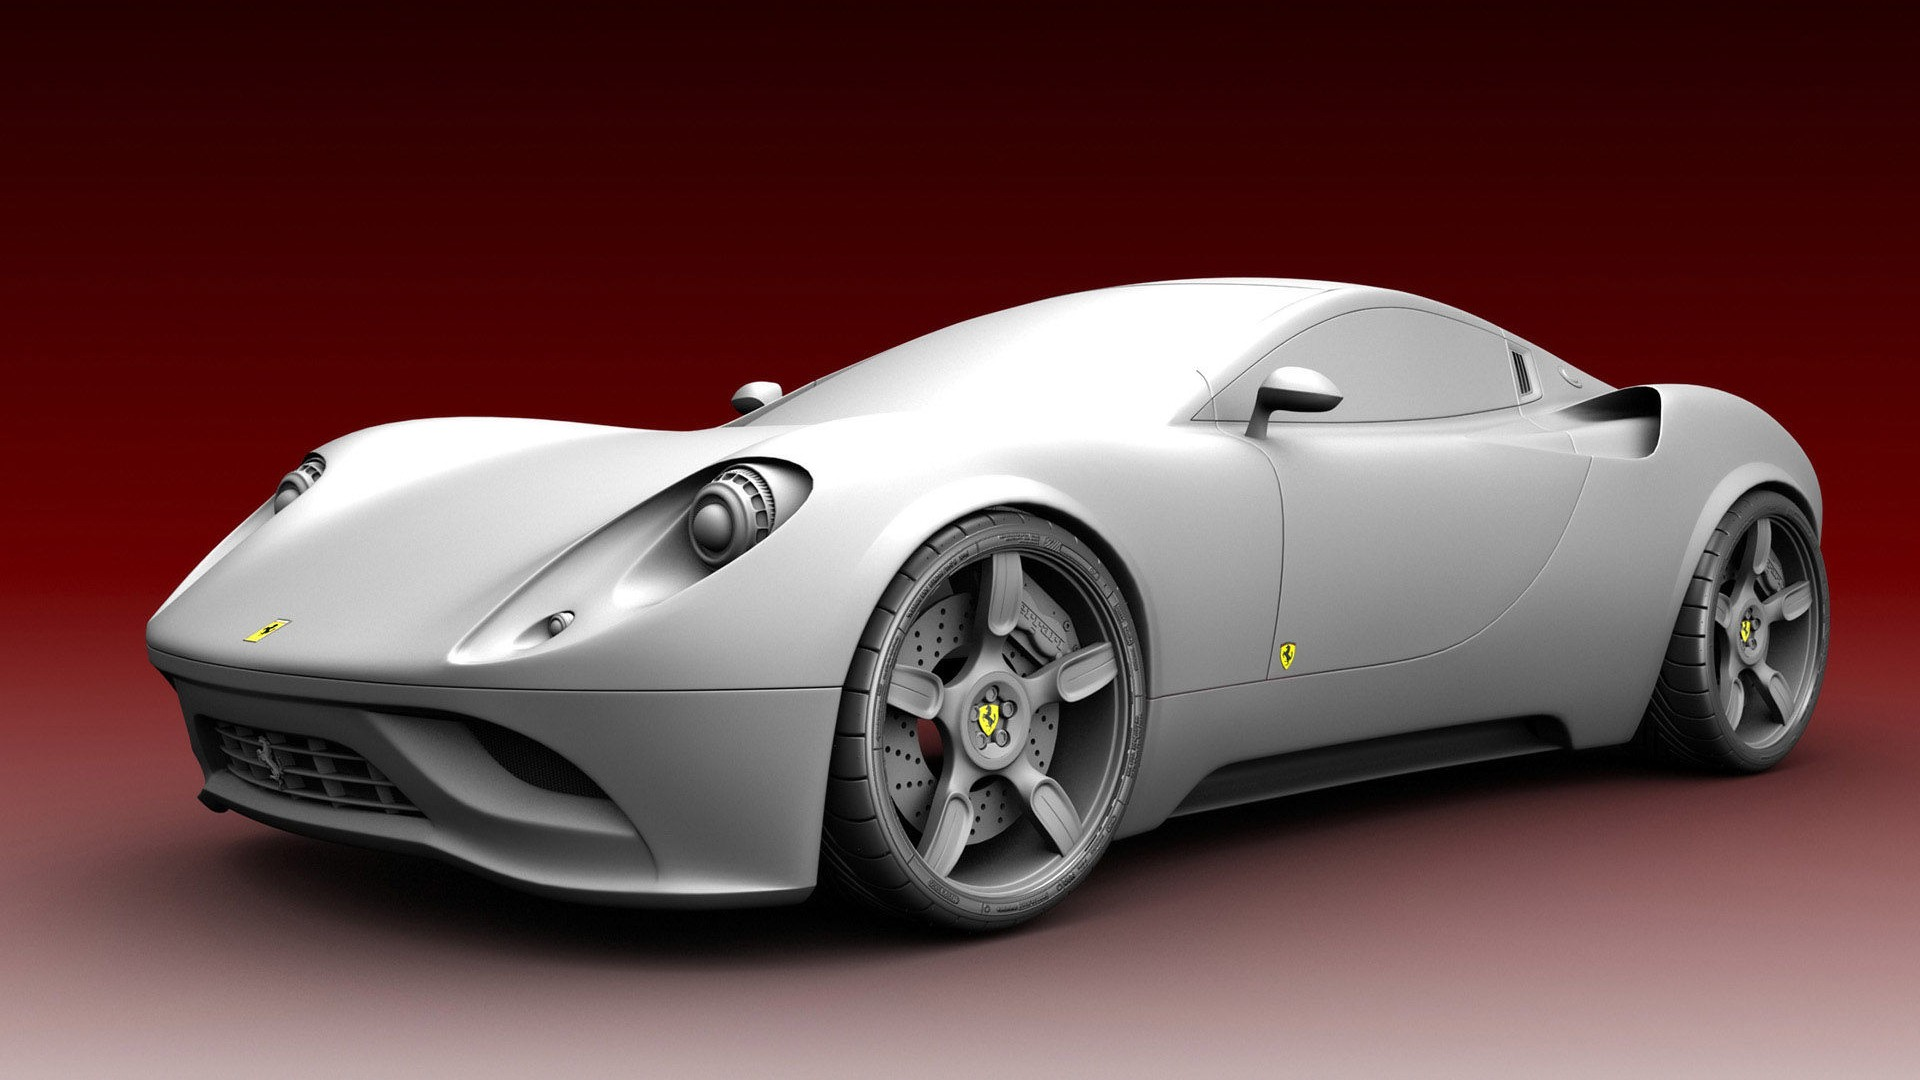 Ferrari Car Images Free Download Ferrari Cars Photos Free